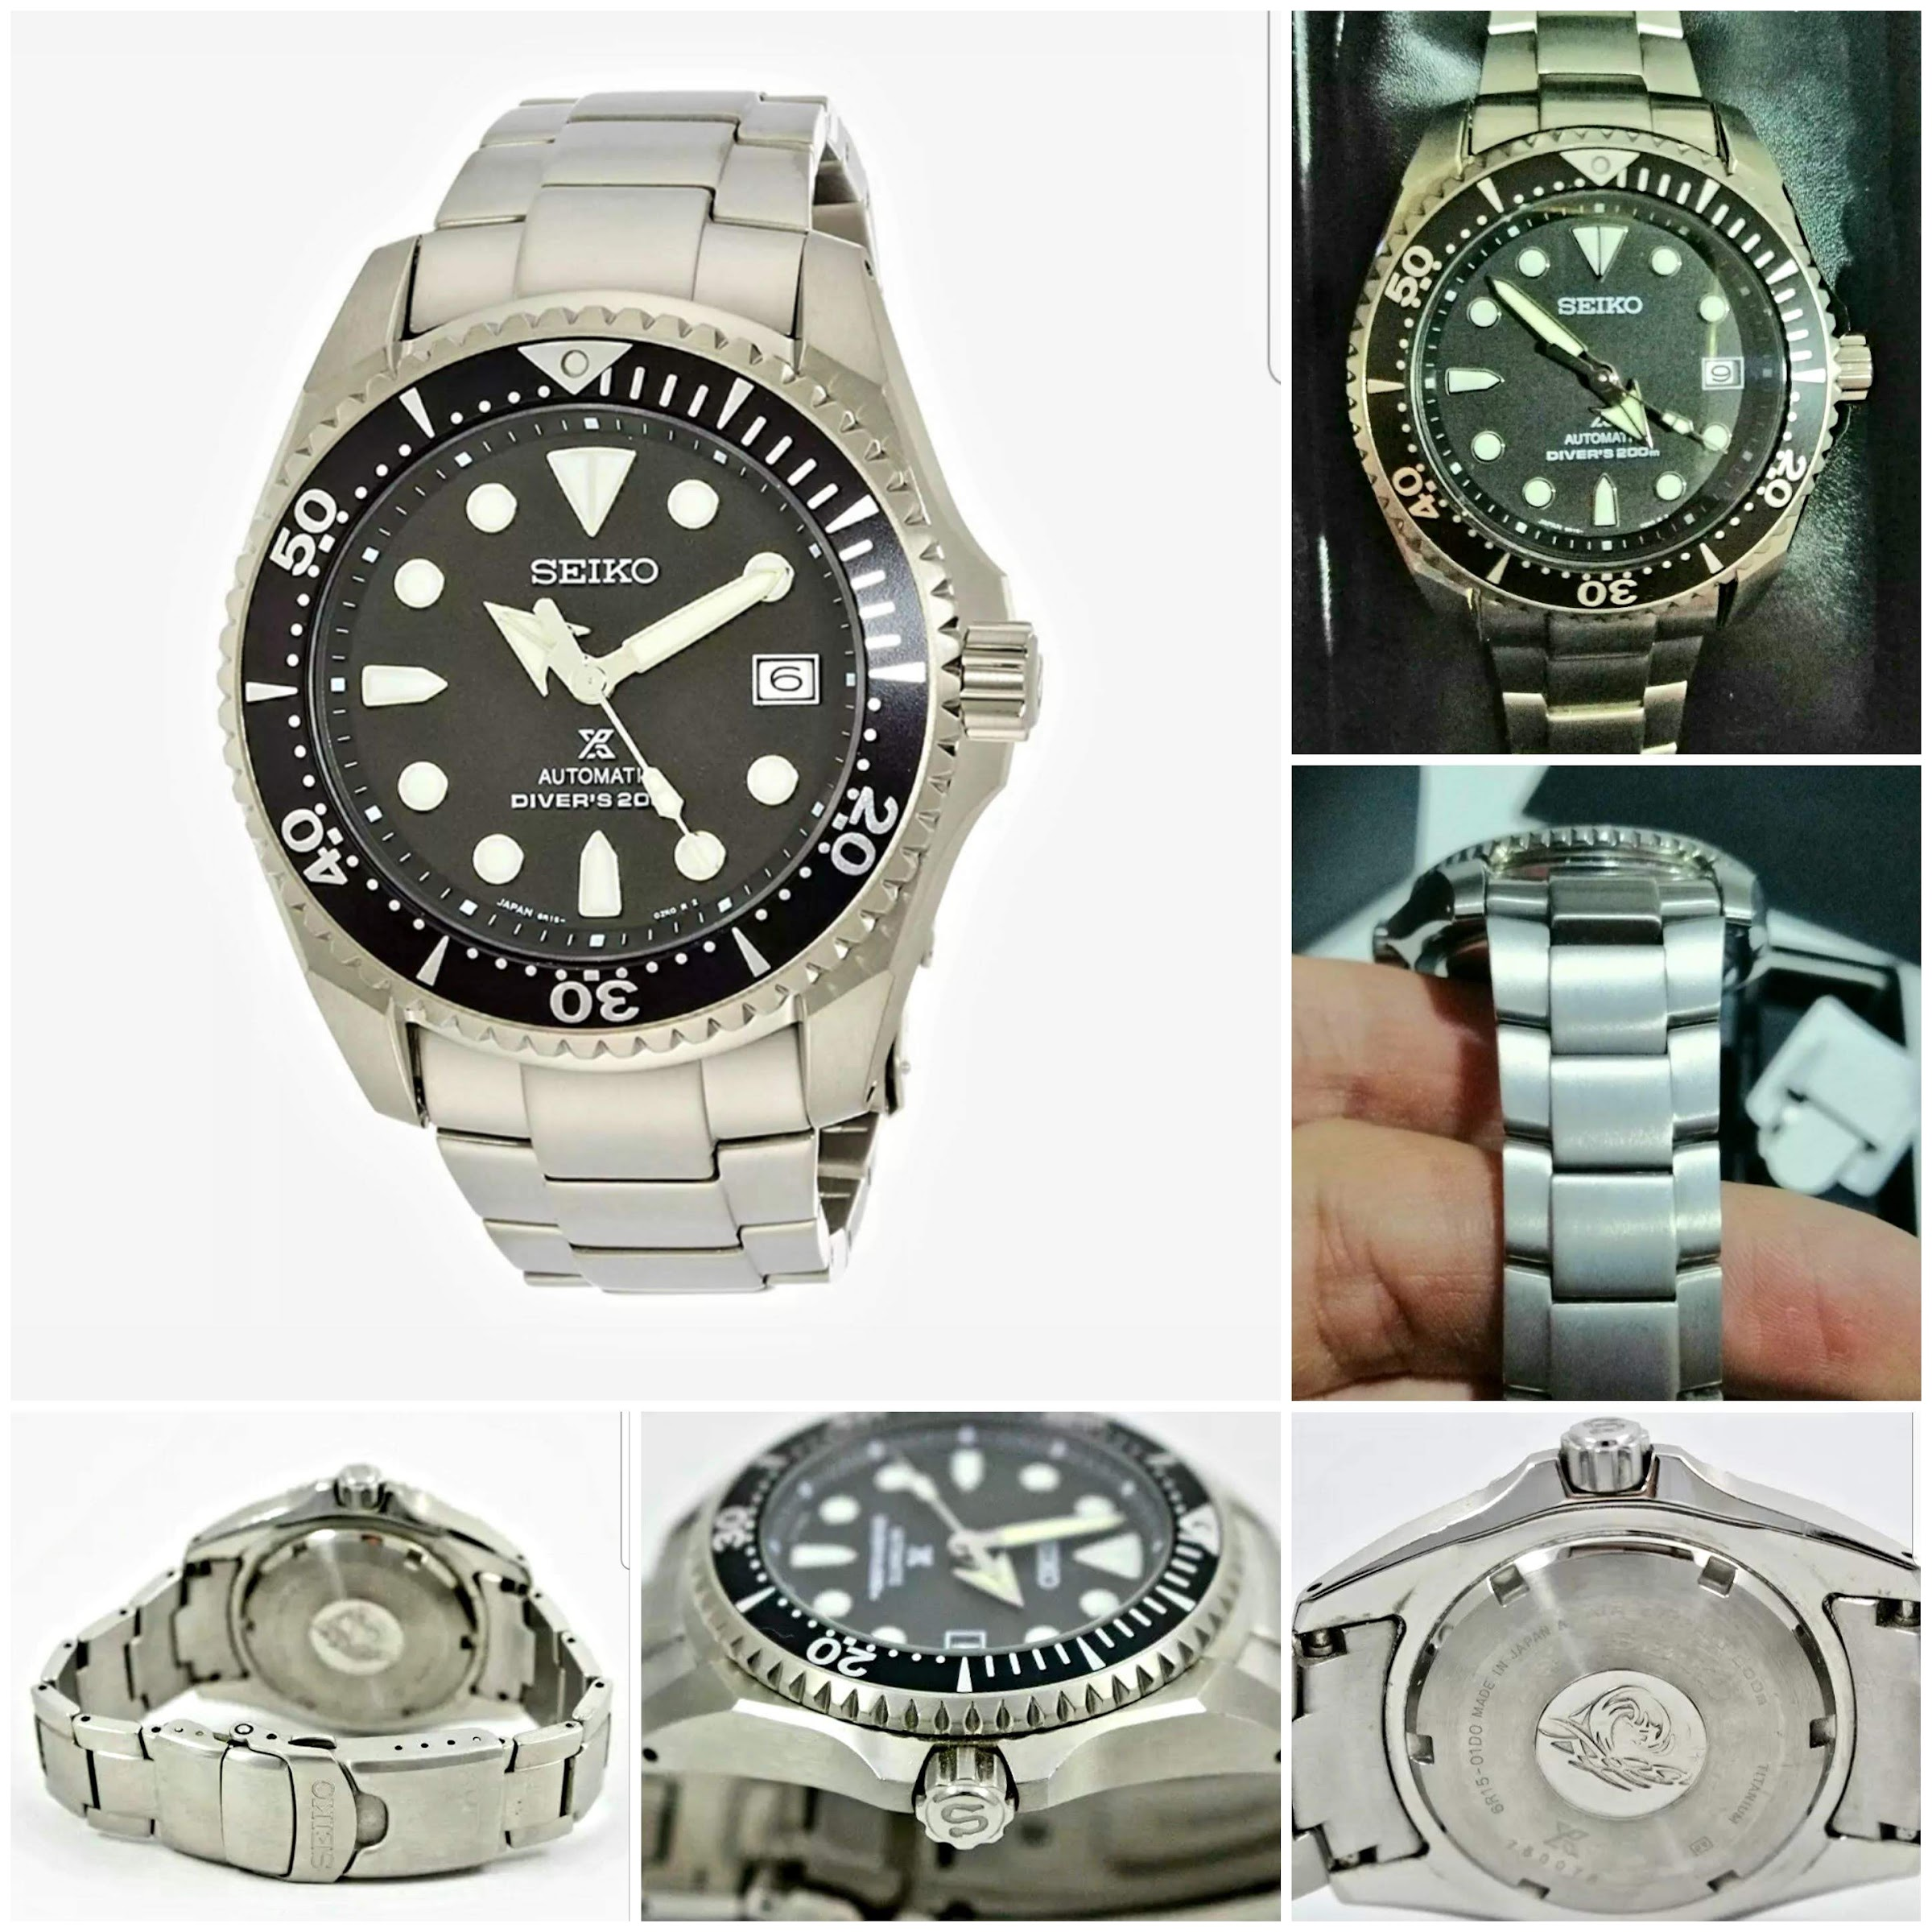 "The Seiko Prospex SBDC029 ""Shogun"" is an impressive ISO certified diving watch. Made of titanium, it can be considered as a great Rolex Submariner alternative. Now available on eBay"